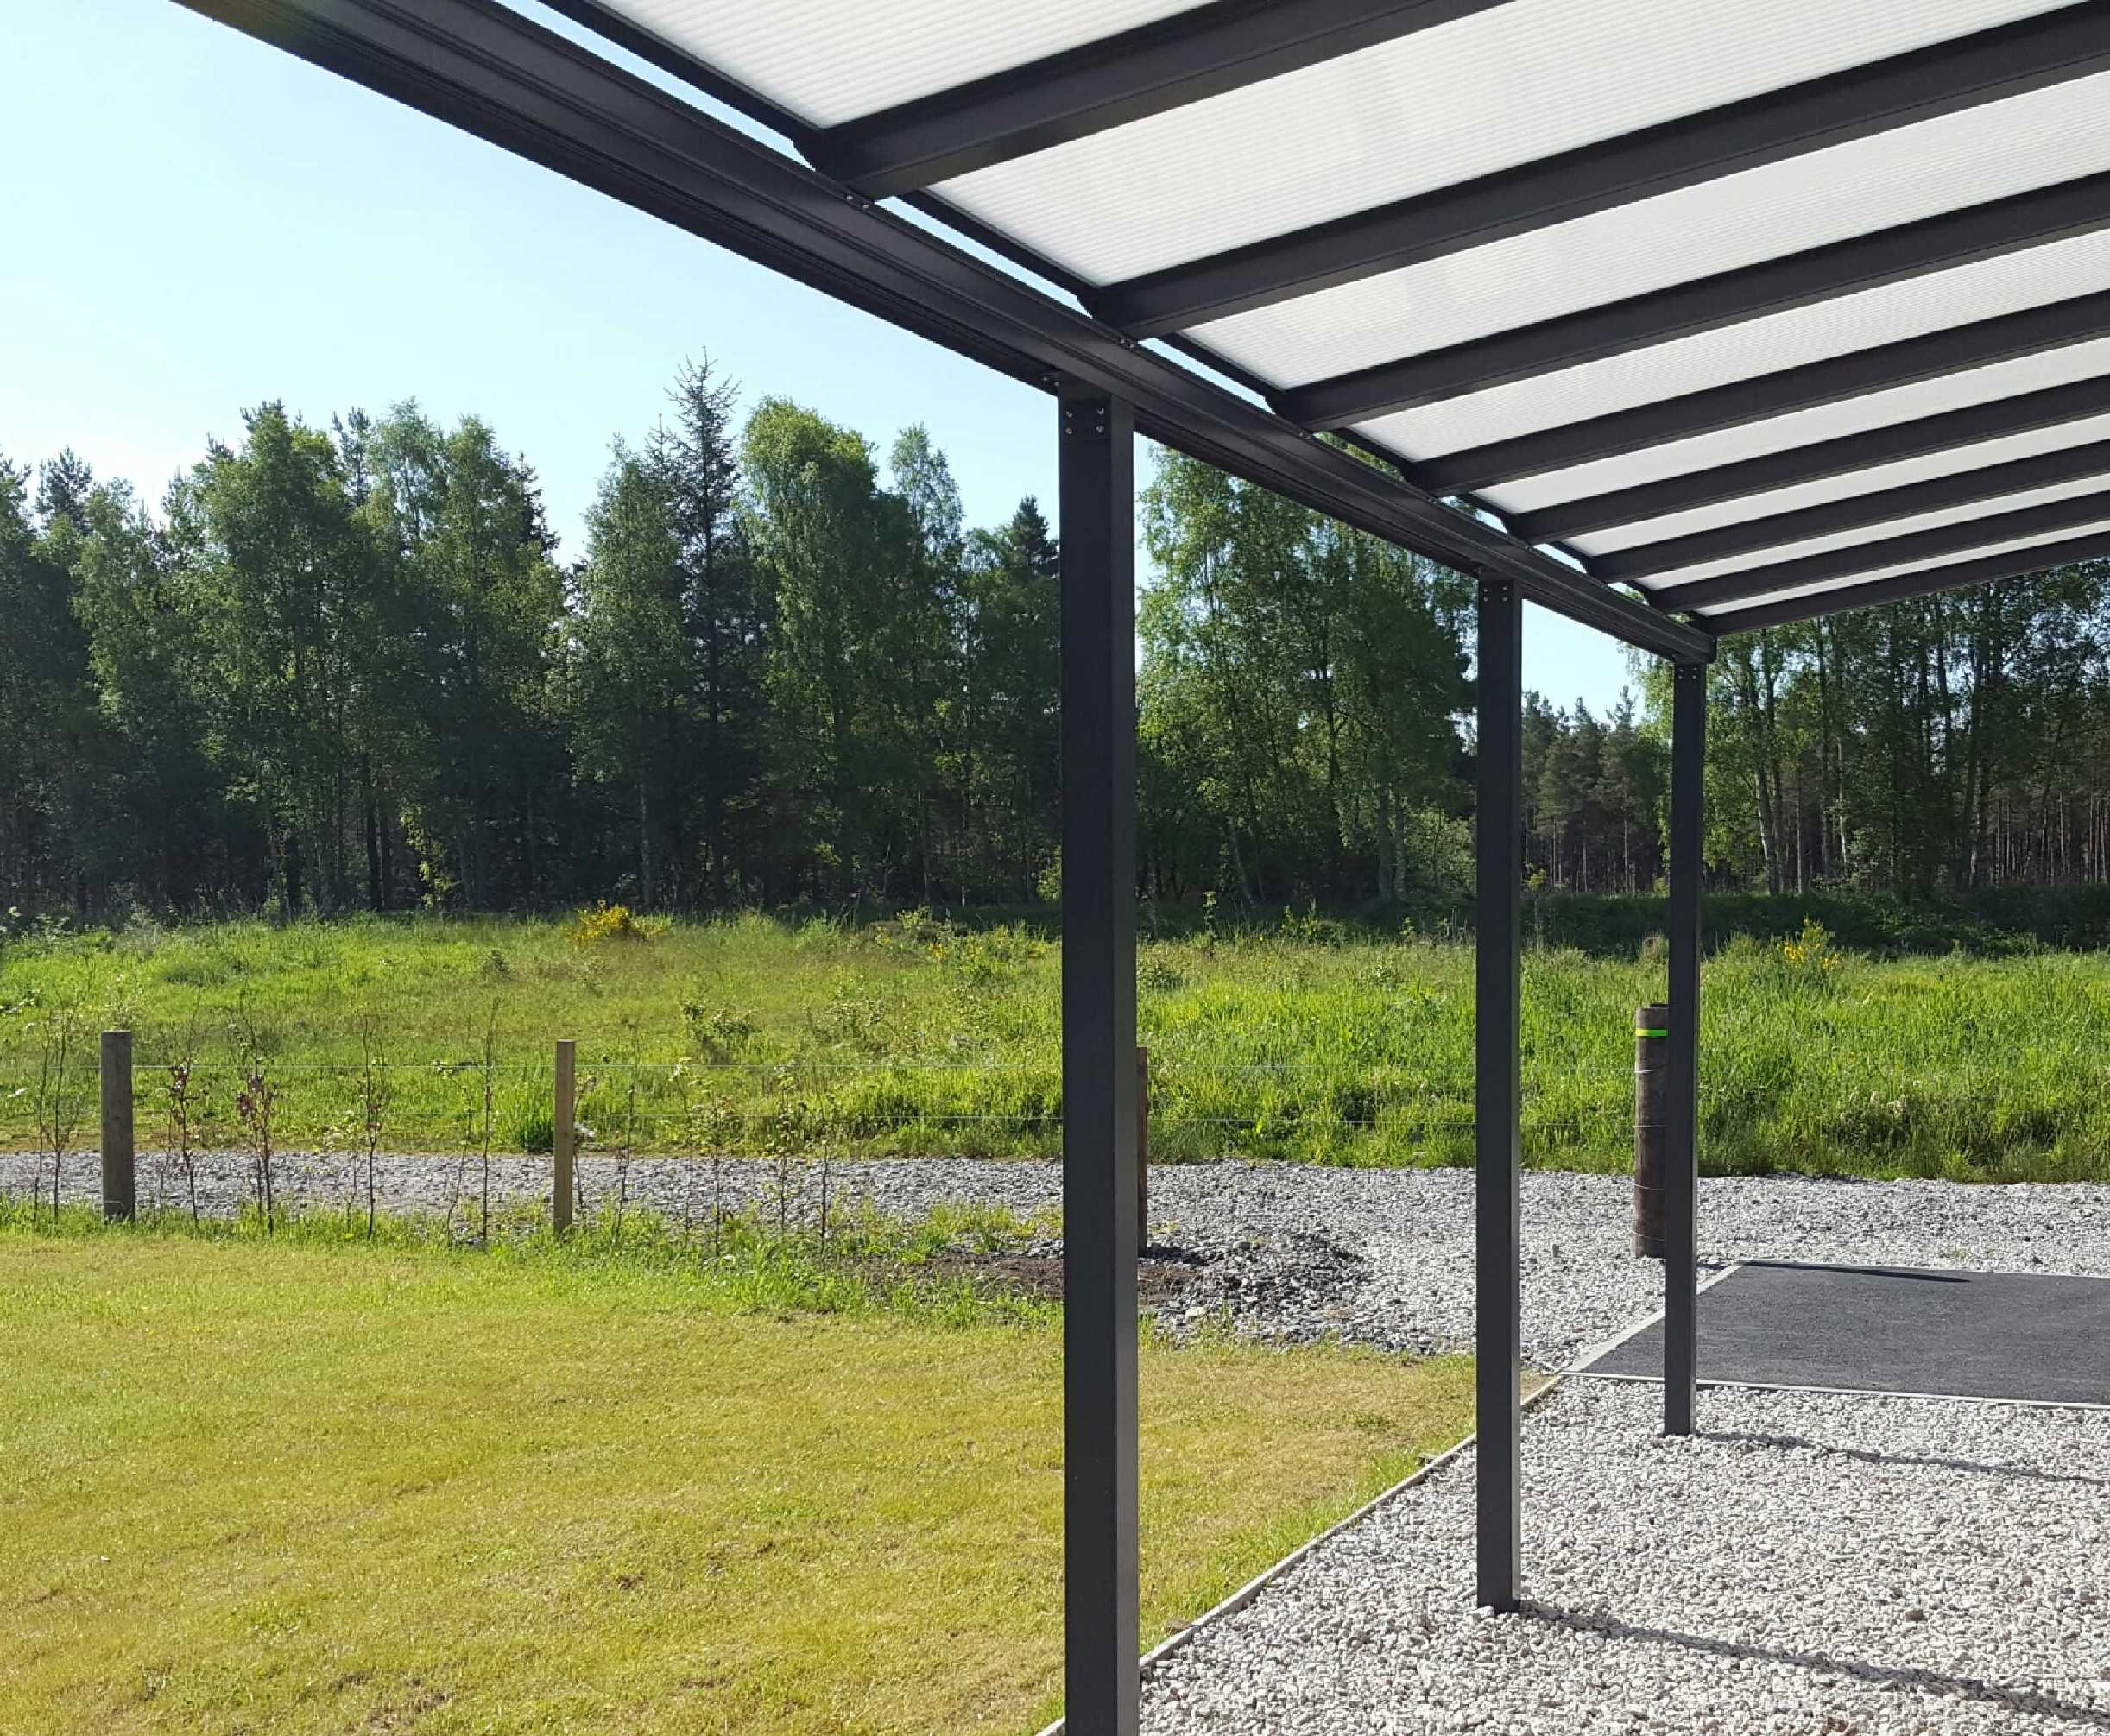 Omega Smart Lean-To Canopy, Anthracite Grey, 16mm Polycarbonate Glazing - 3.1m (W) x 2.0m (P), (2) Supporting Posts